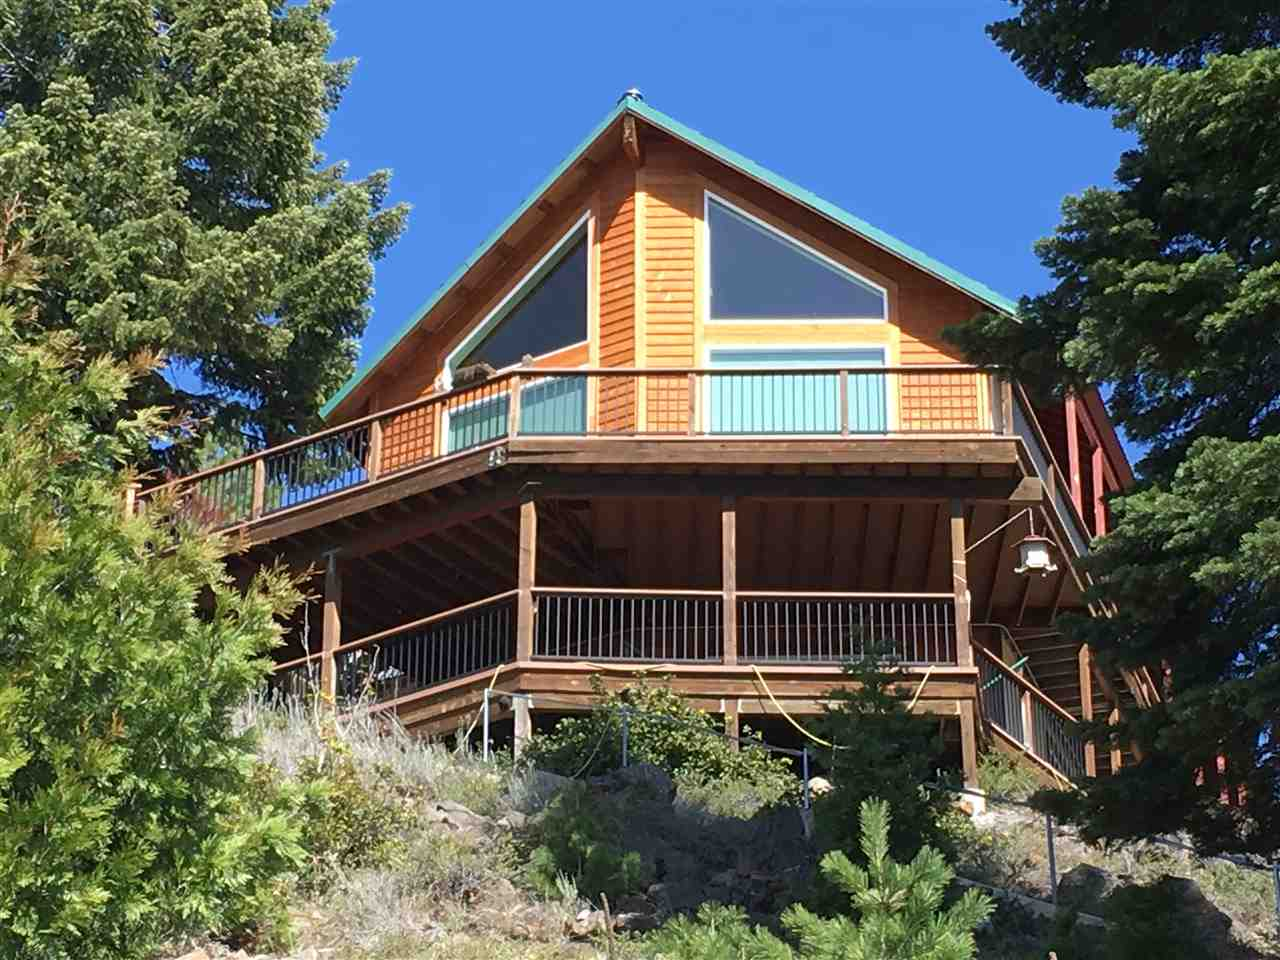 Single Family Home for Active at 827 Lassen View Drive 827 Lassen View Drive Lake Almanor, California 96137 United States